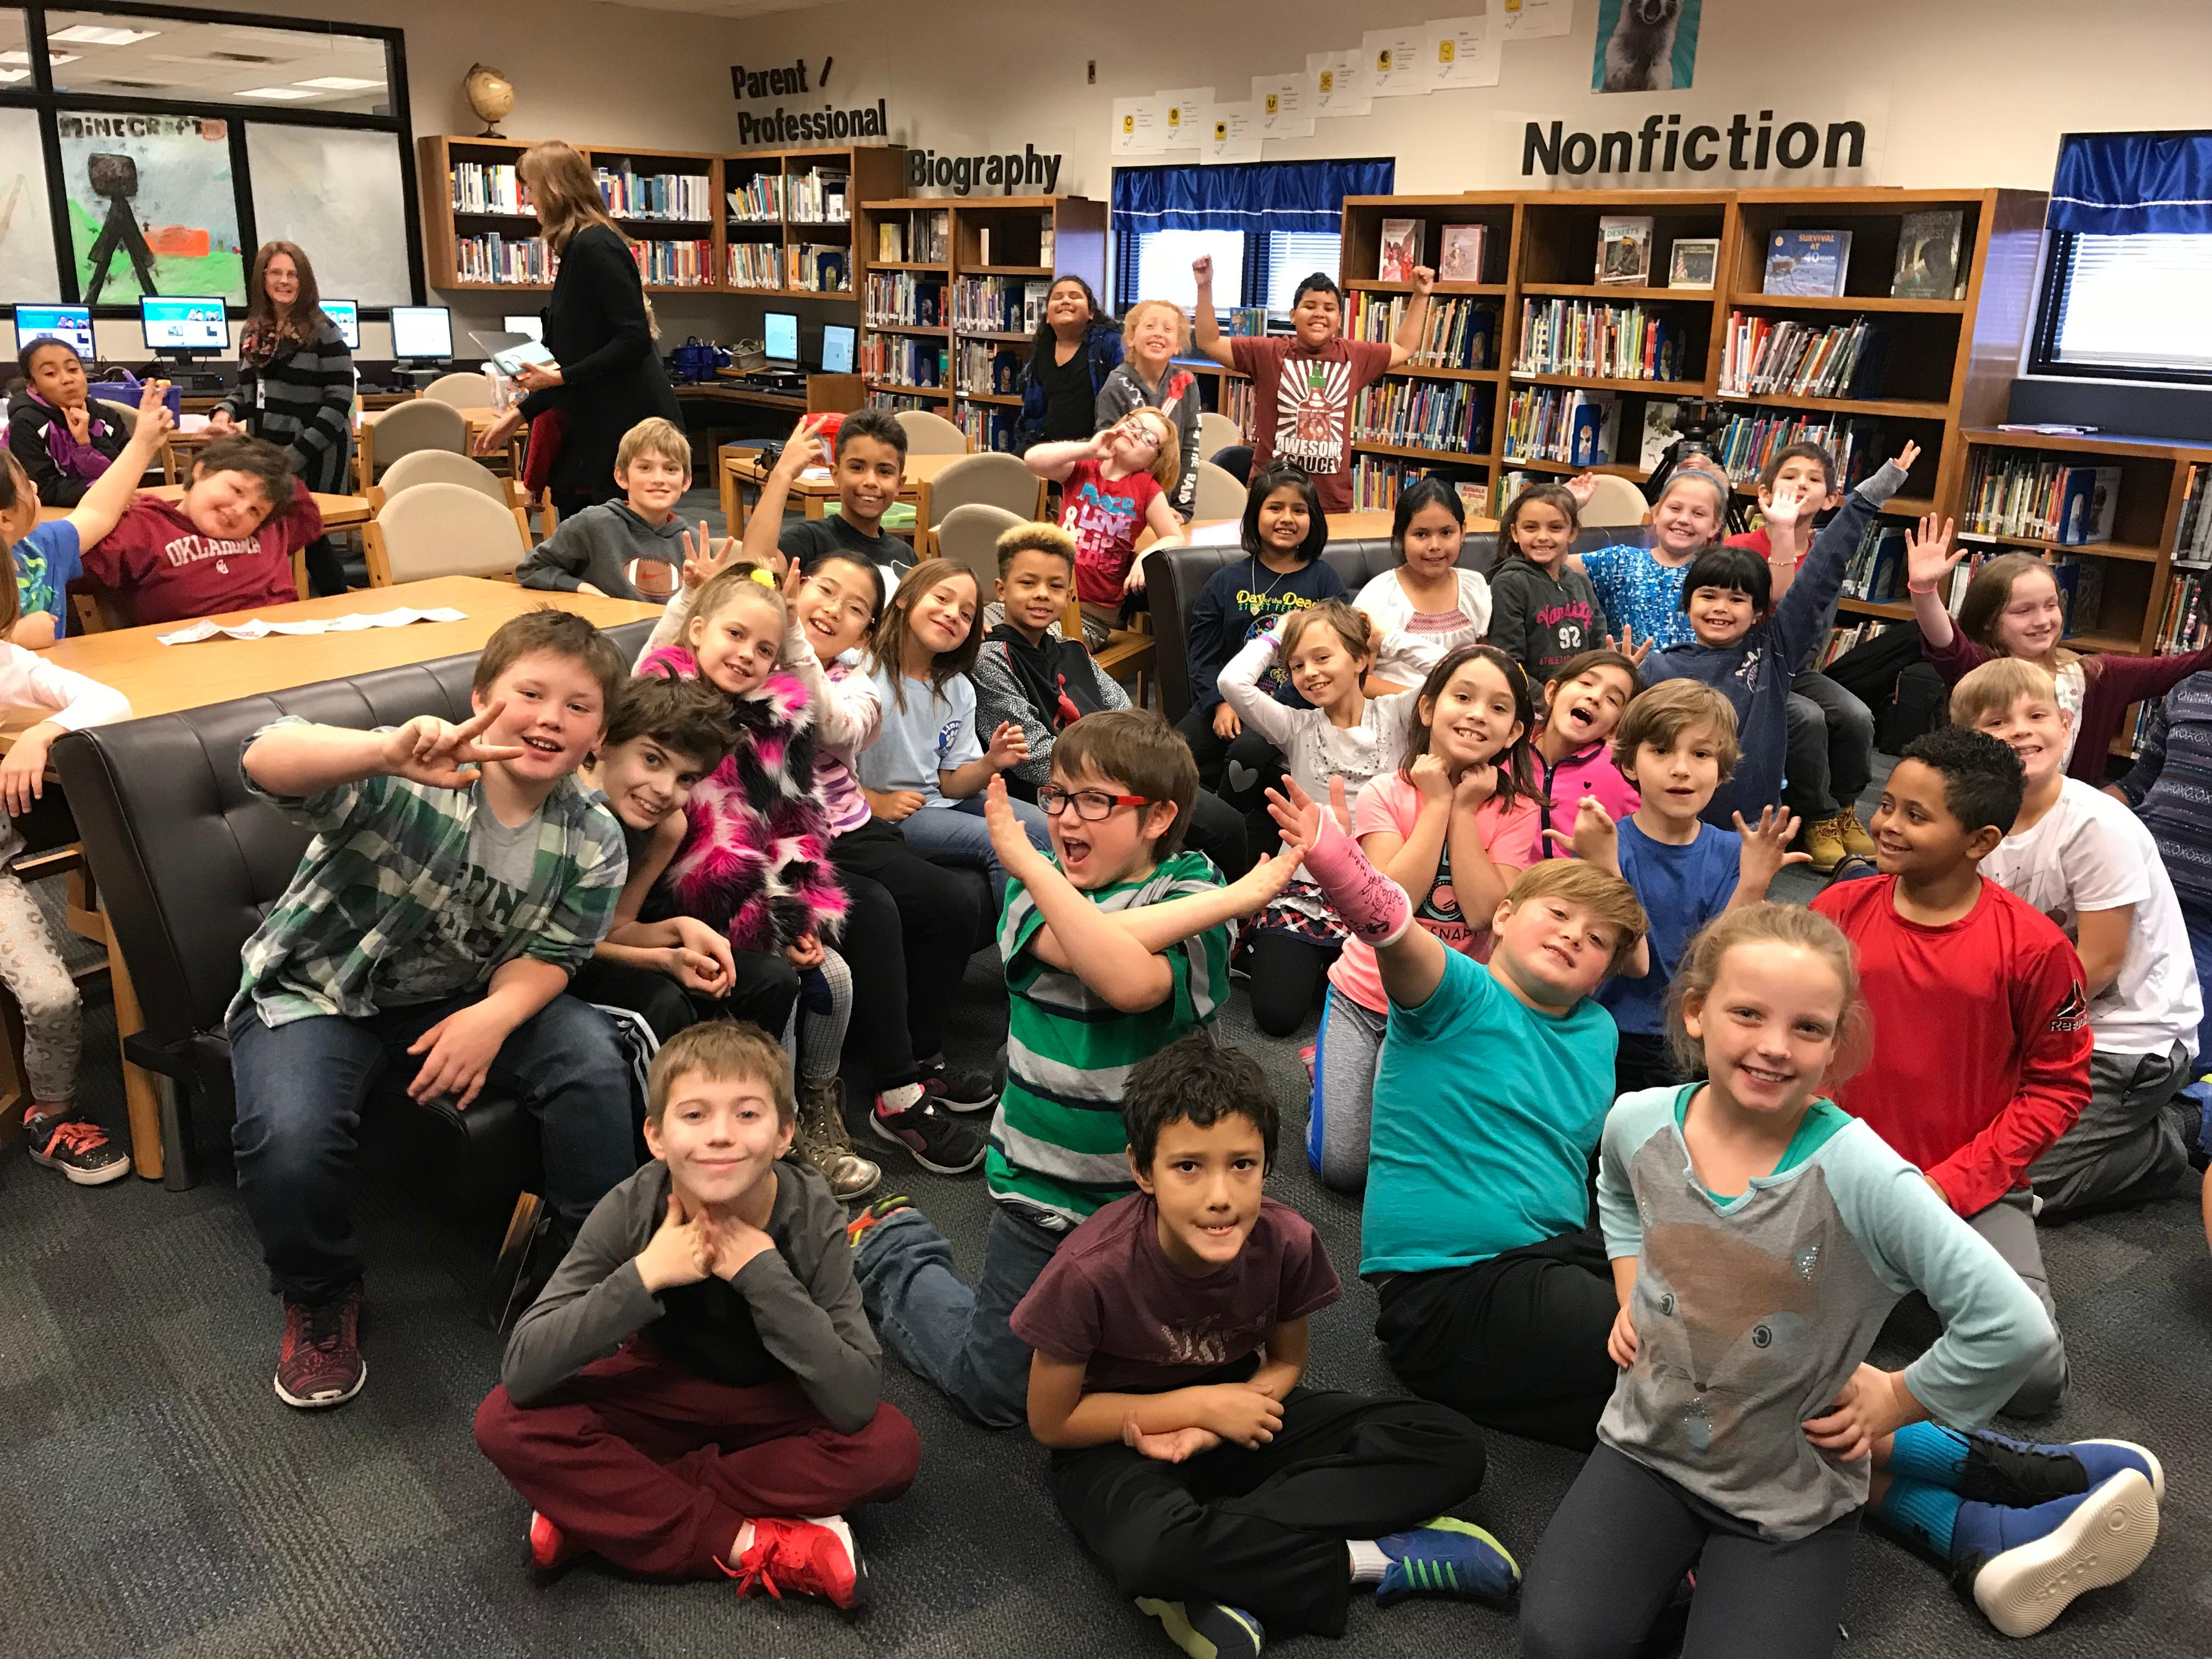 The 3rd graders at Lincoln Elementary in Norman on Our December 12, 2017 visit!